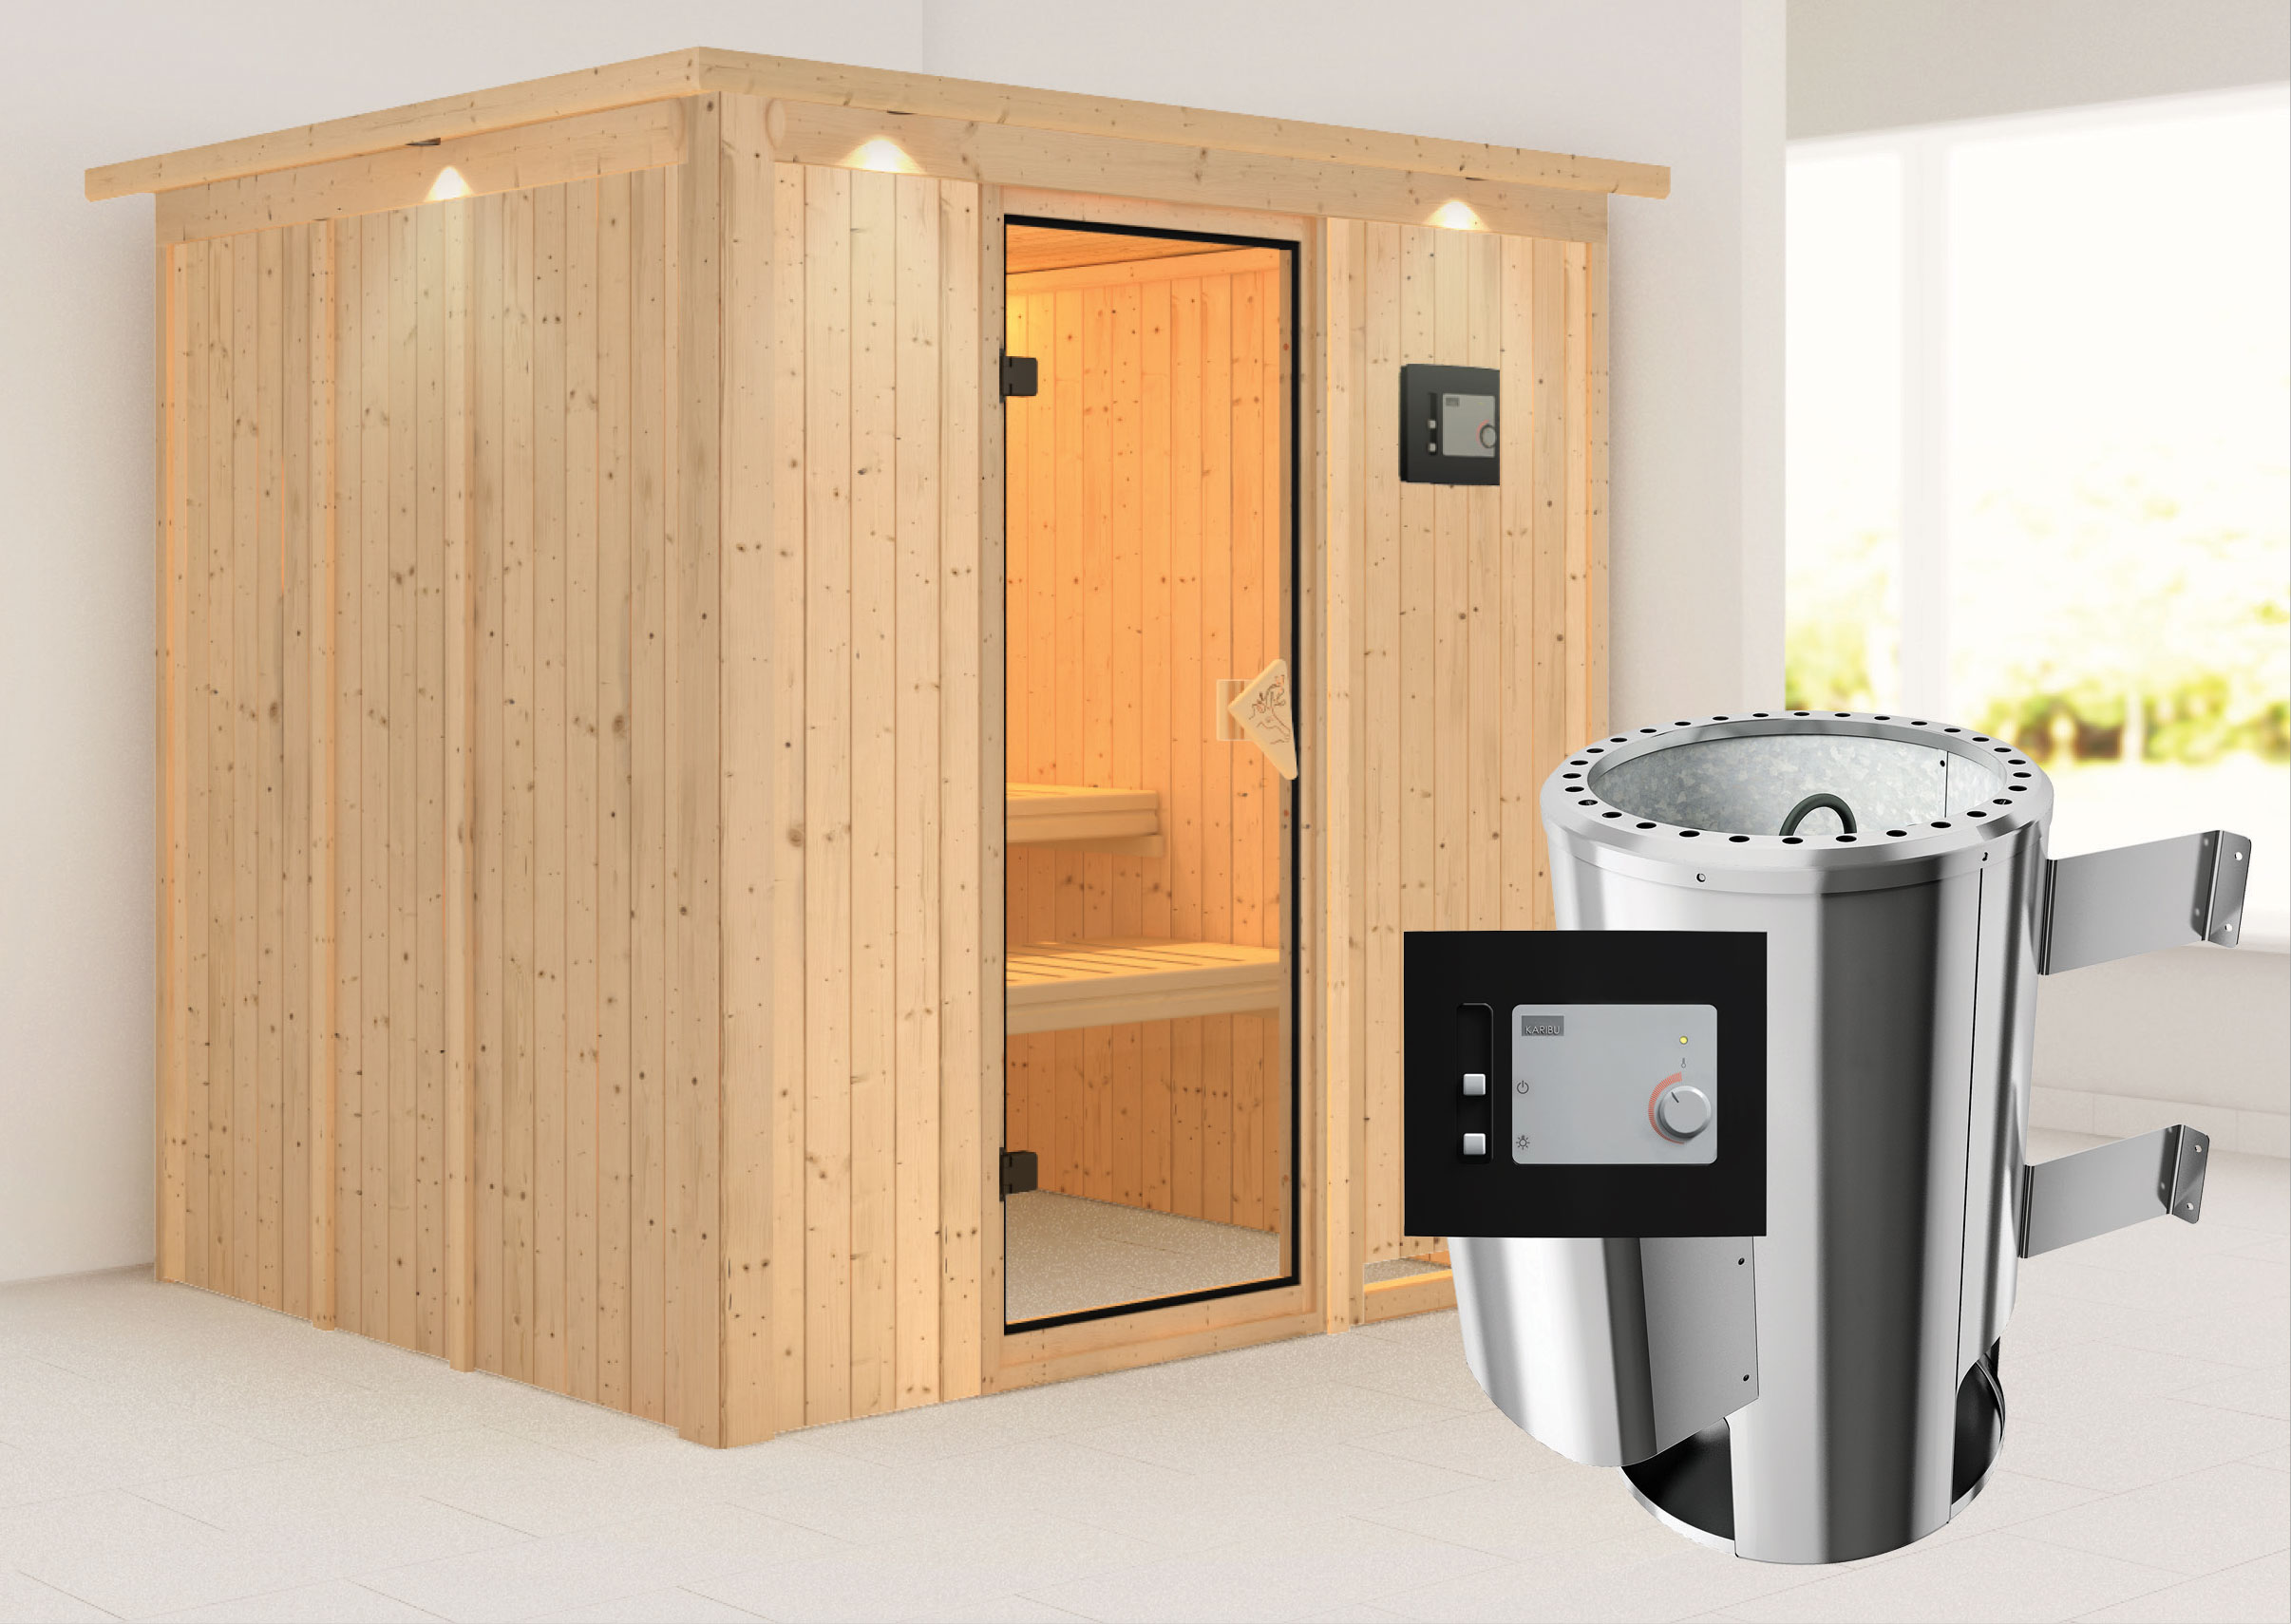 karibu sauna daria 230 volt mit dachkranz saunaofen 3 6 kw. Black Bedroom Furniture Sets. Home Design Ideas